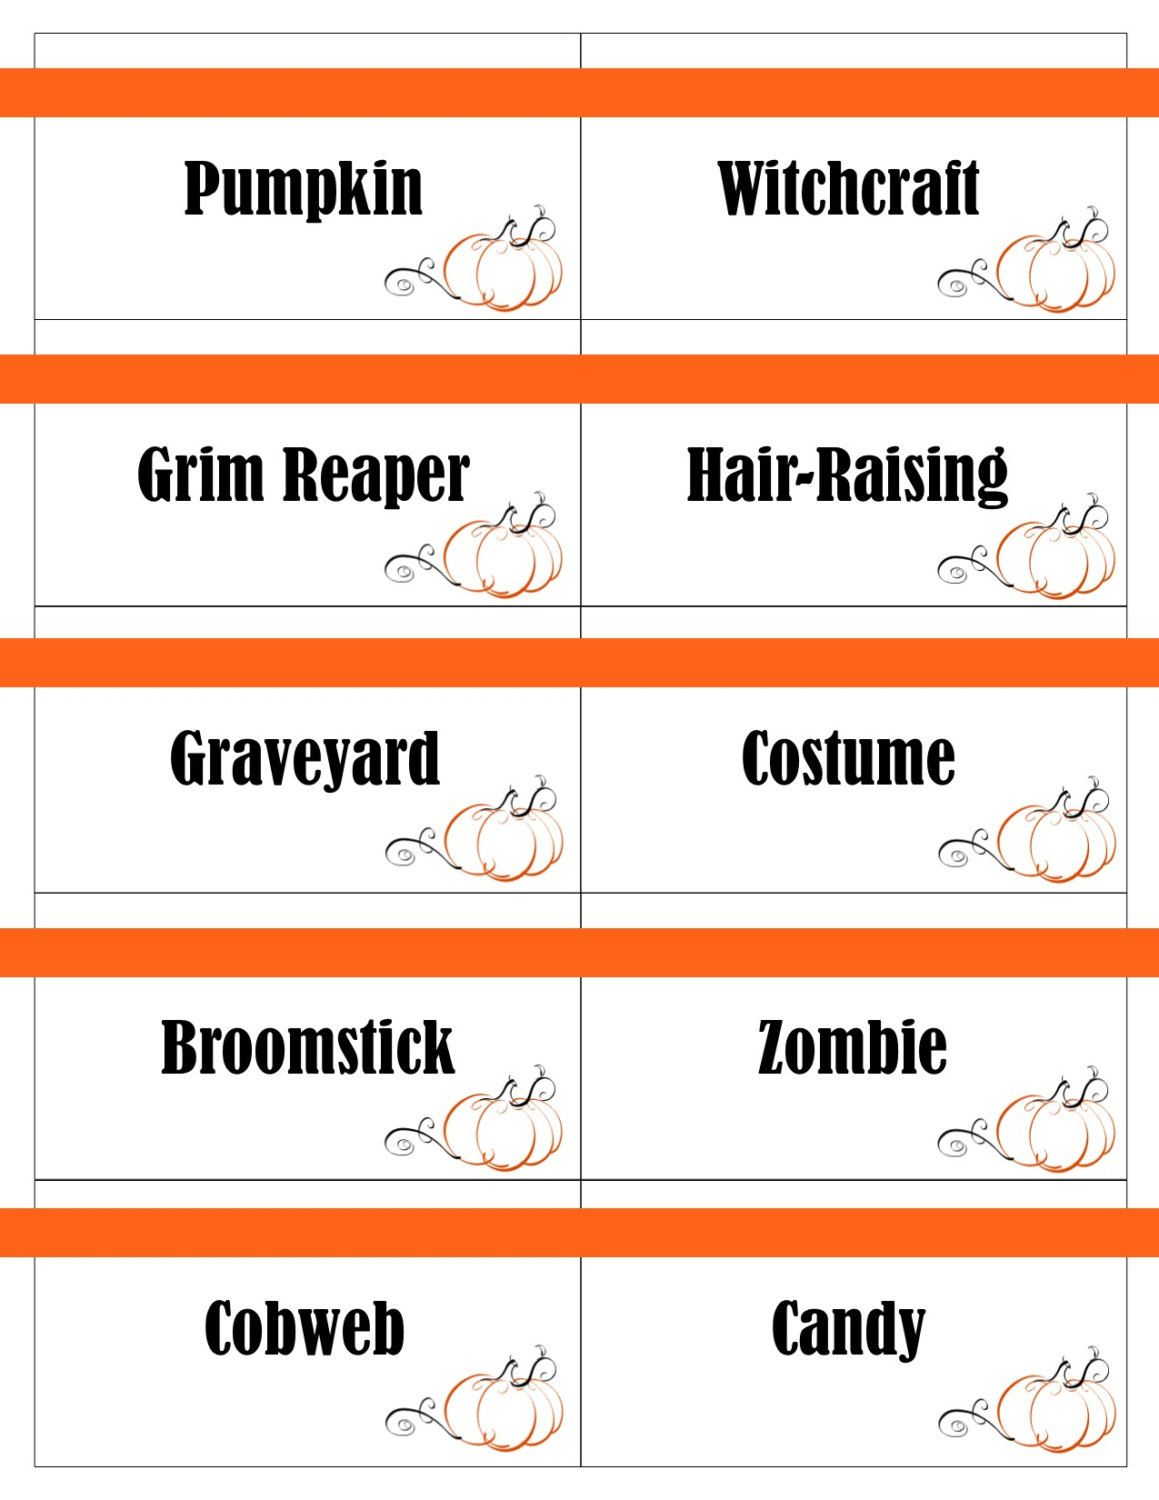 printable halloween game cards for pictionary, charades, hangman and